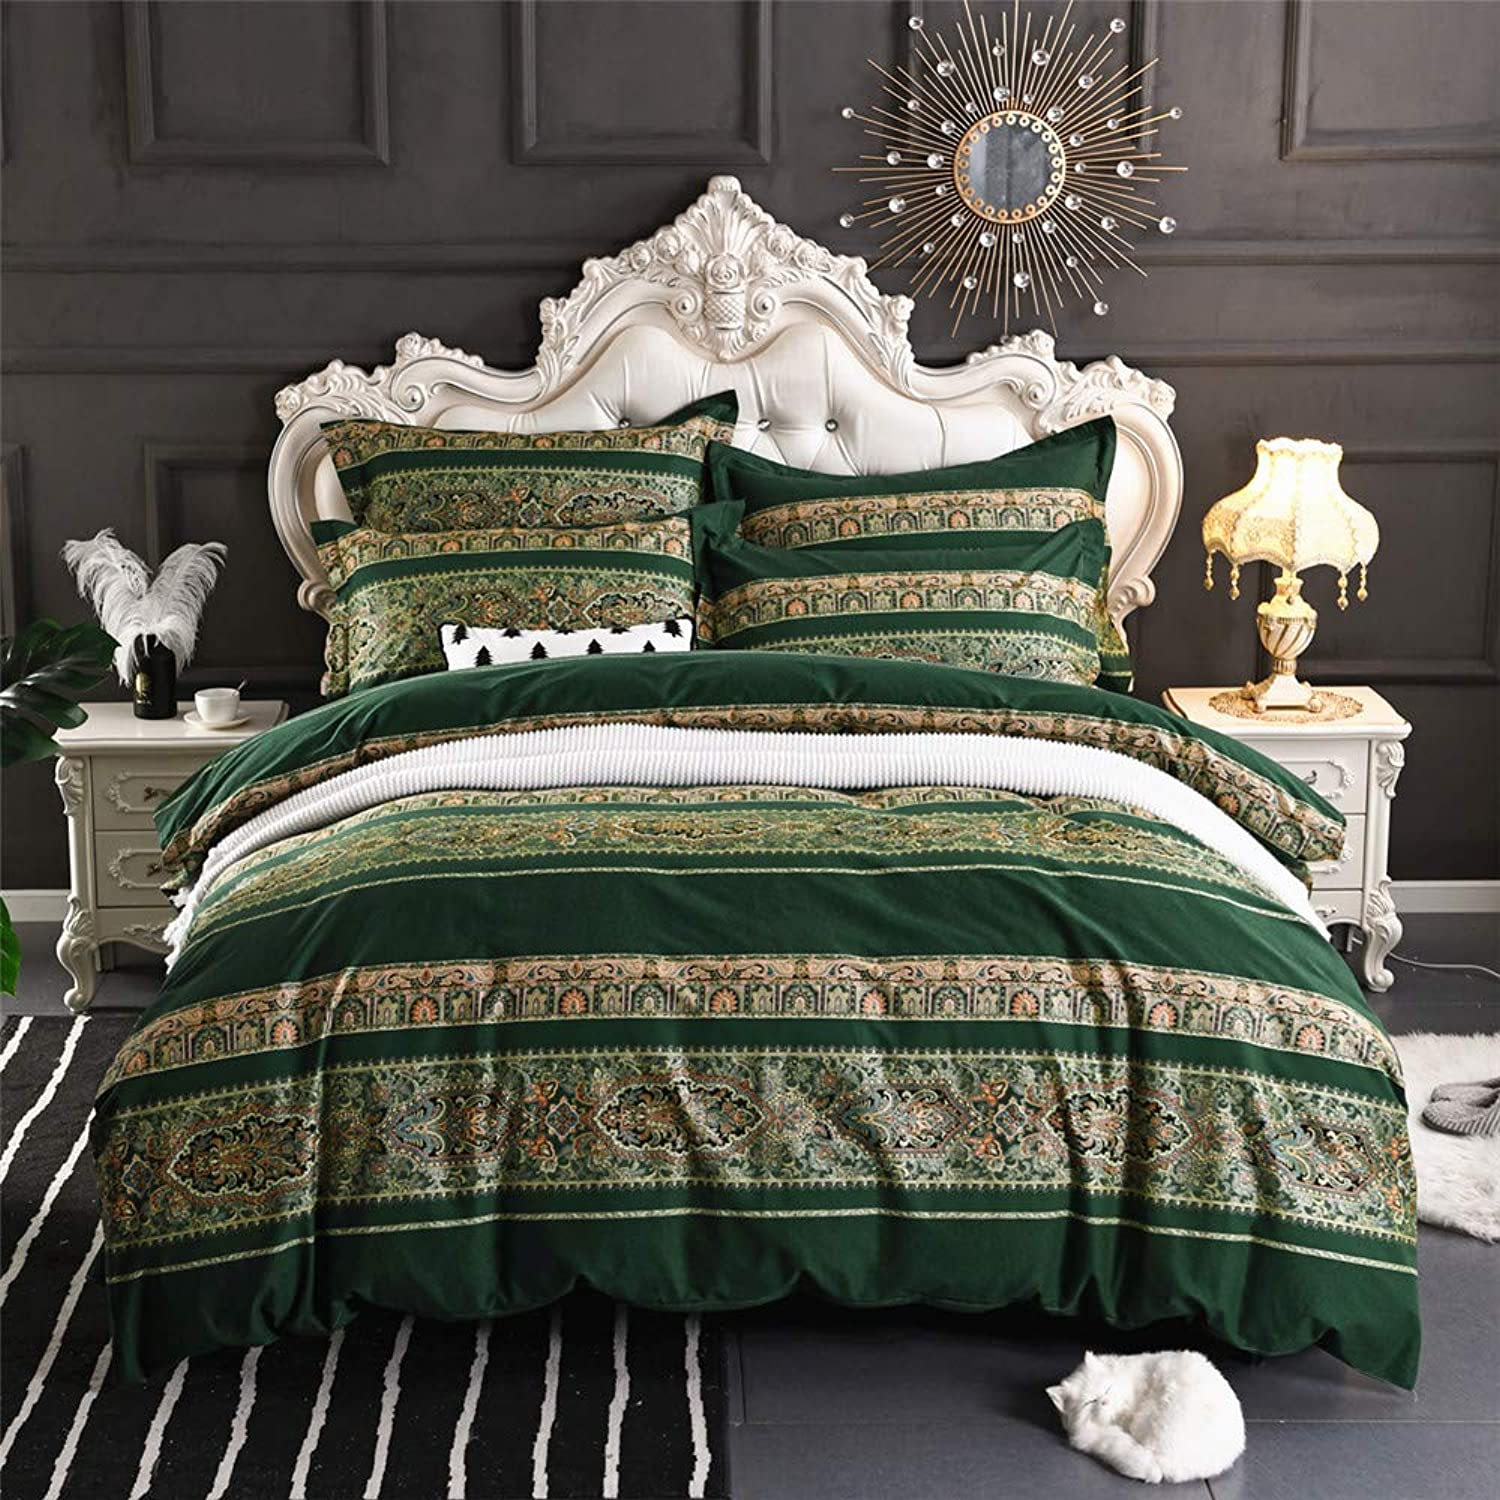 Abreeze 3Pcs colorful Boho Bedding Set Bohemian Duvet Covers Queen Size